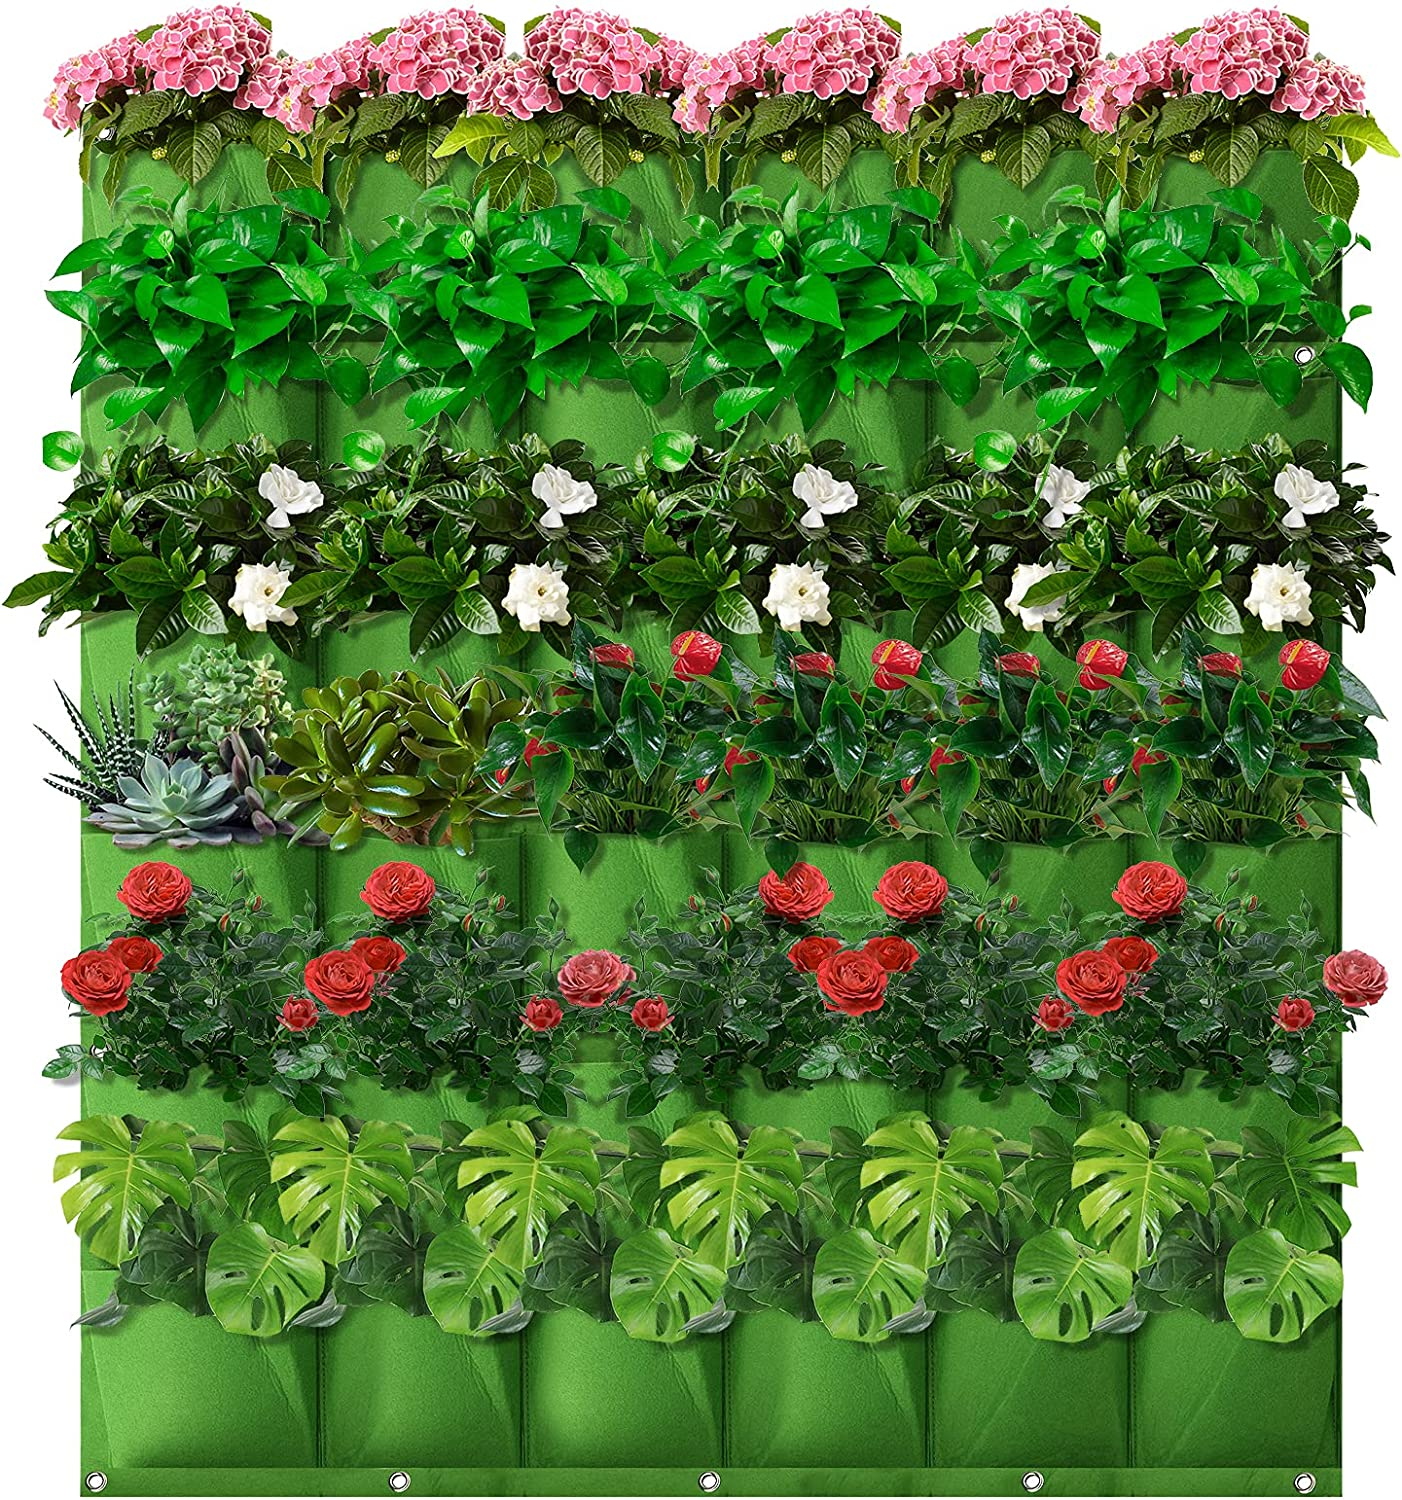 LINGSFIRE Vertical Garden Planter, 36 Pockets Felt Wall Hanging Planter Large-Capacity Wall Planter Bags for Flowers Vegetables and Herbs Planting Yard Garden Patios and Home Decoration